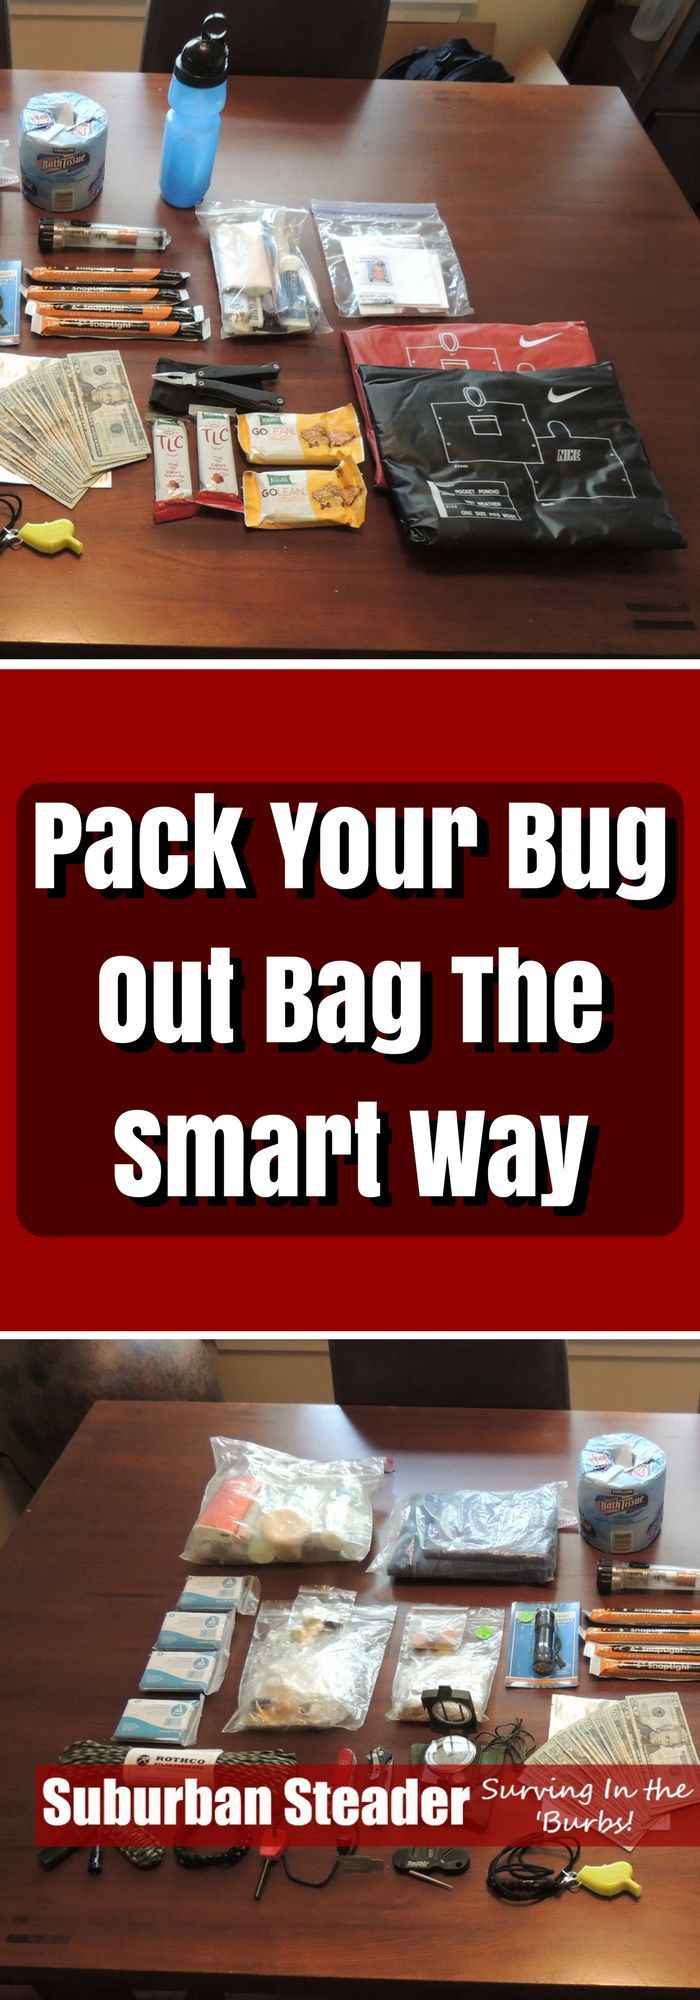 Getting all your gear into your bug out bag can be tricky. Learn how to pack your bug out bag the smart way in this informative post.